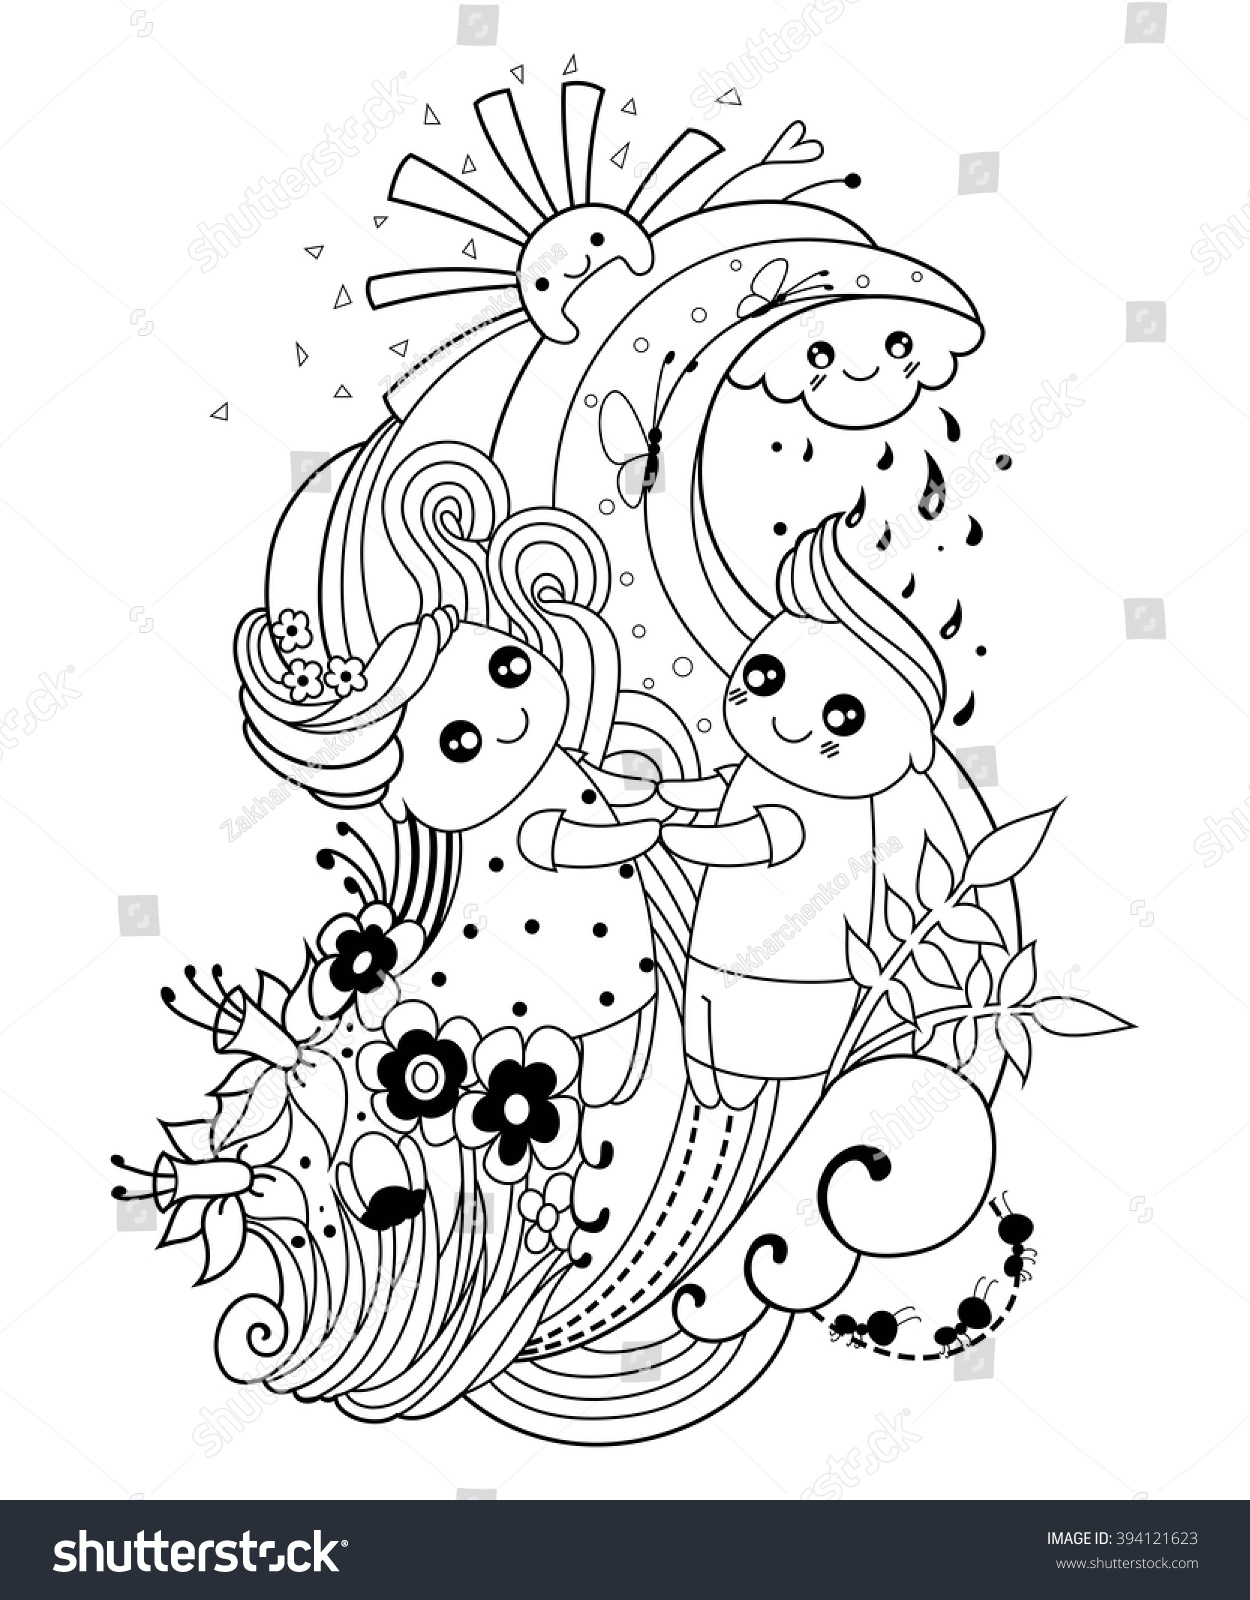 Adult Coloring Page Boy Girl Cloud Stock Vector (Royalty Free ...